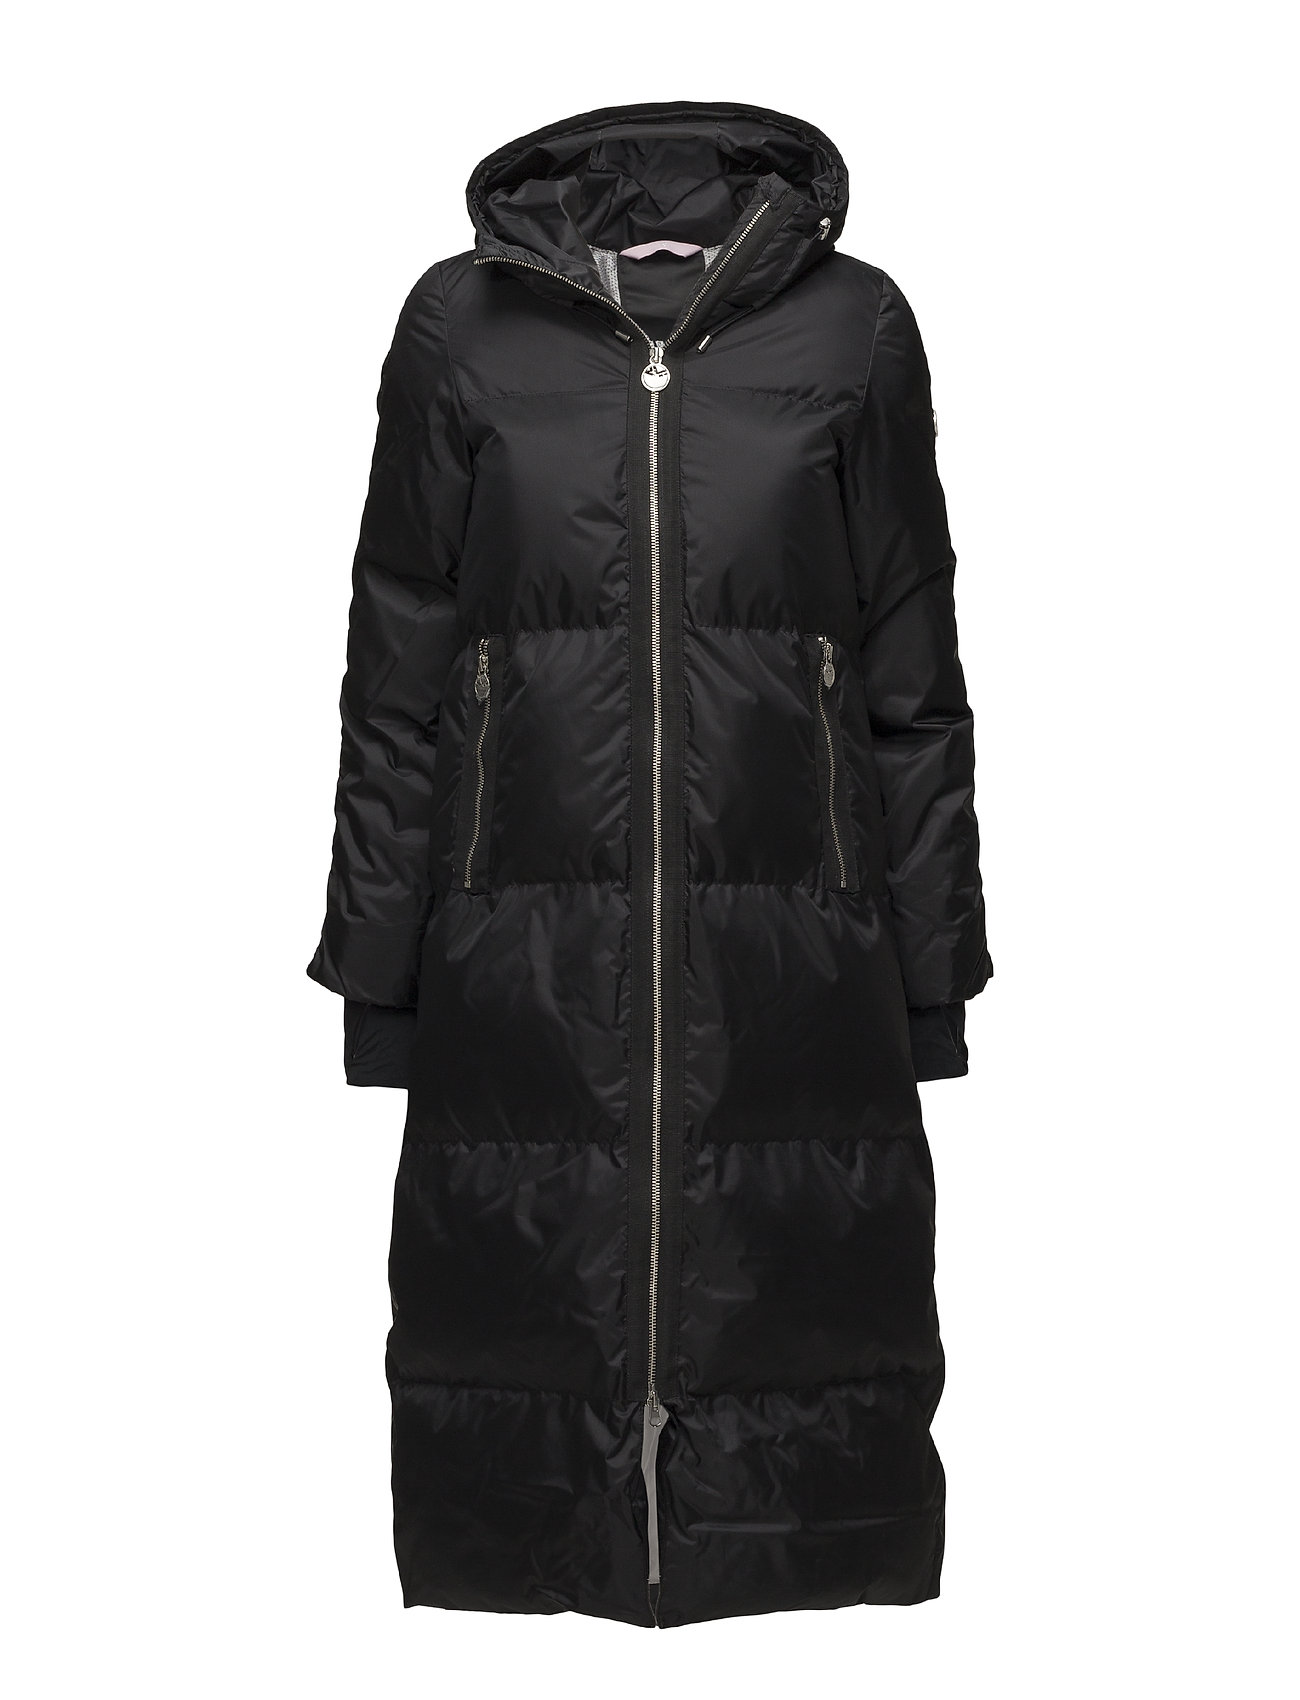 Röhnisch ACTIVE COAT - BLACK